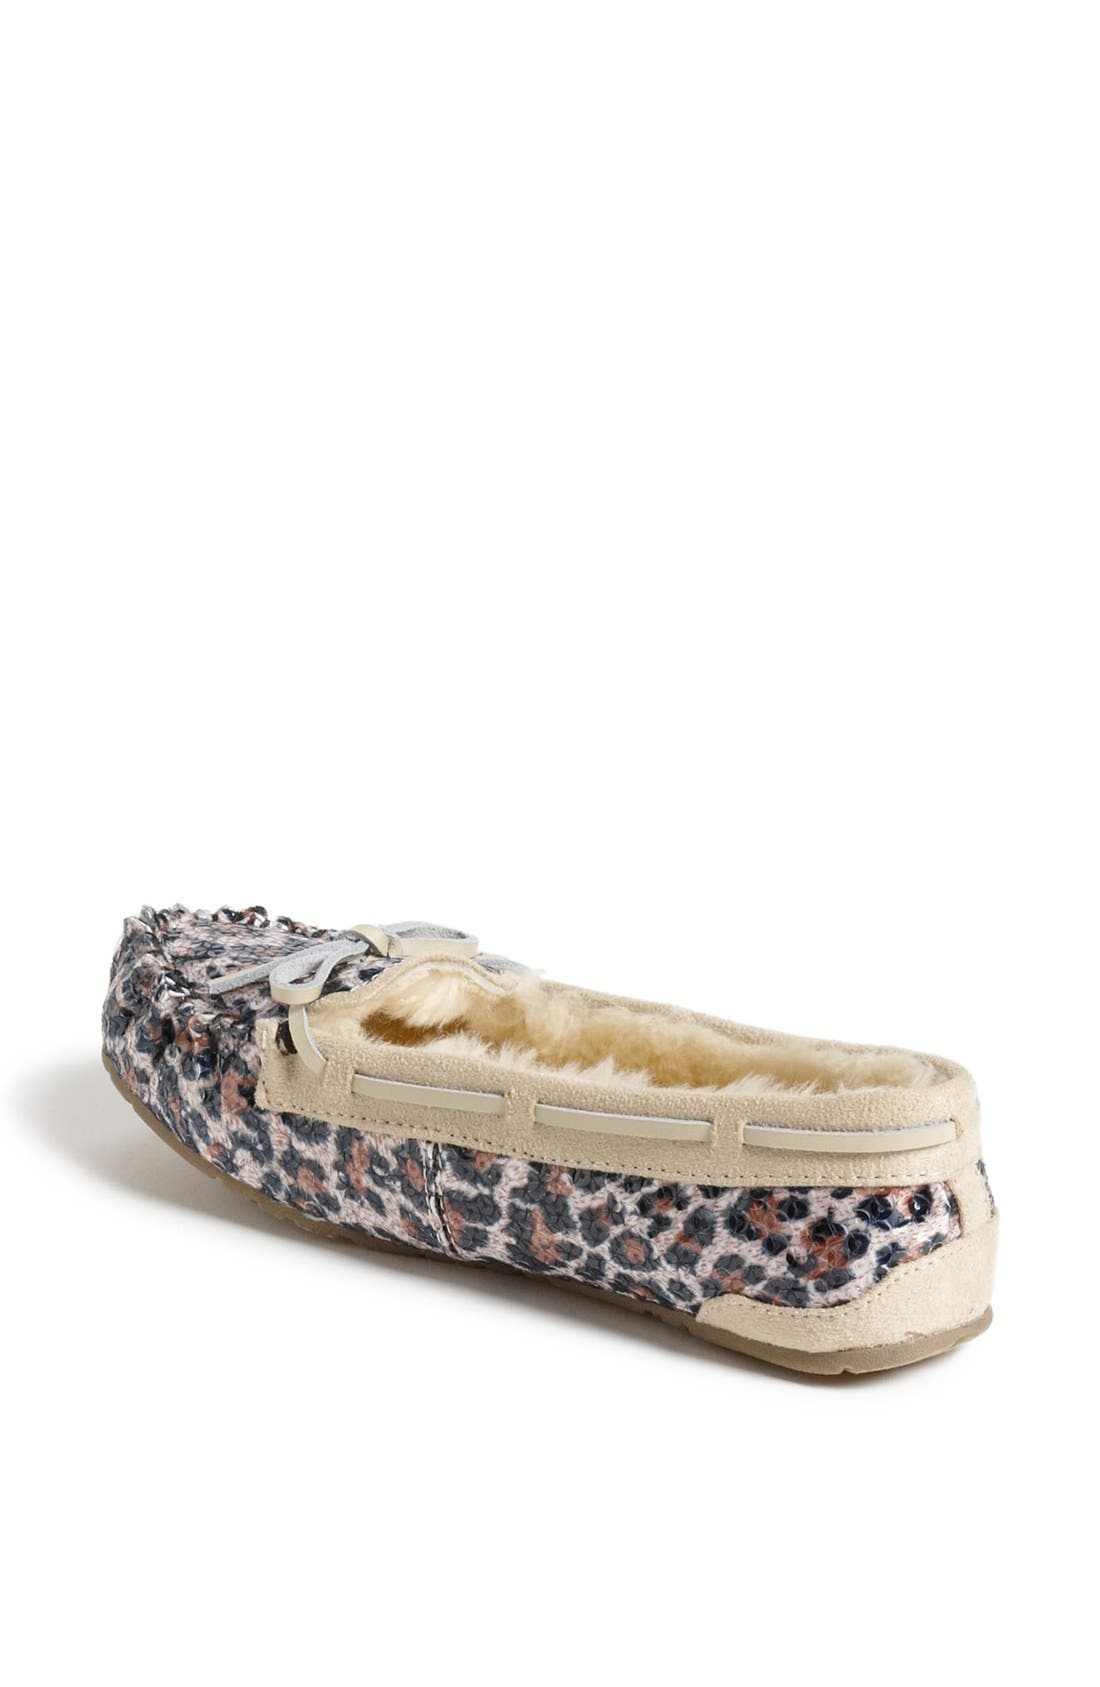 Alternate Image 2  - BC Footwear 'All Decked Out' Slipper